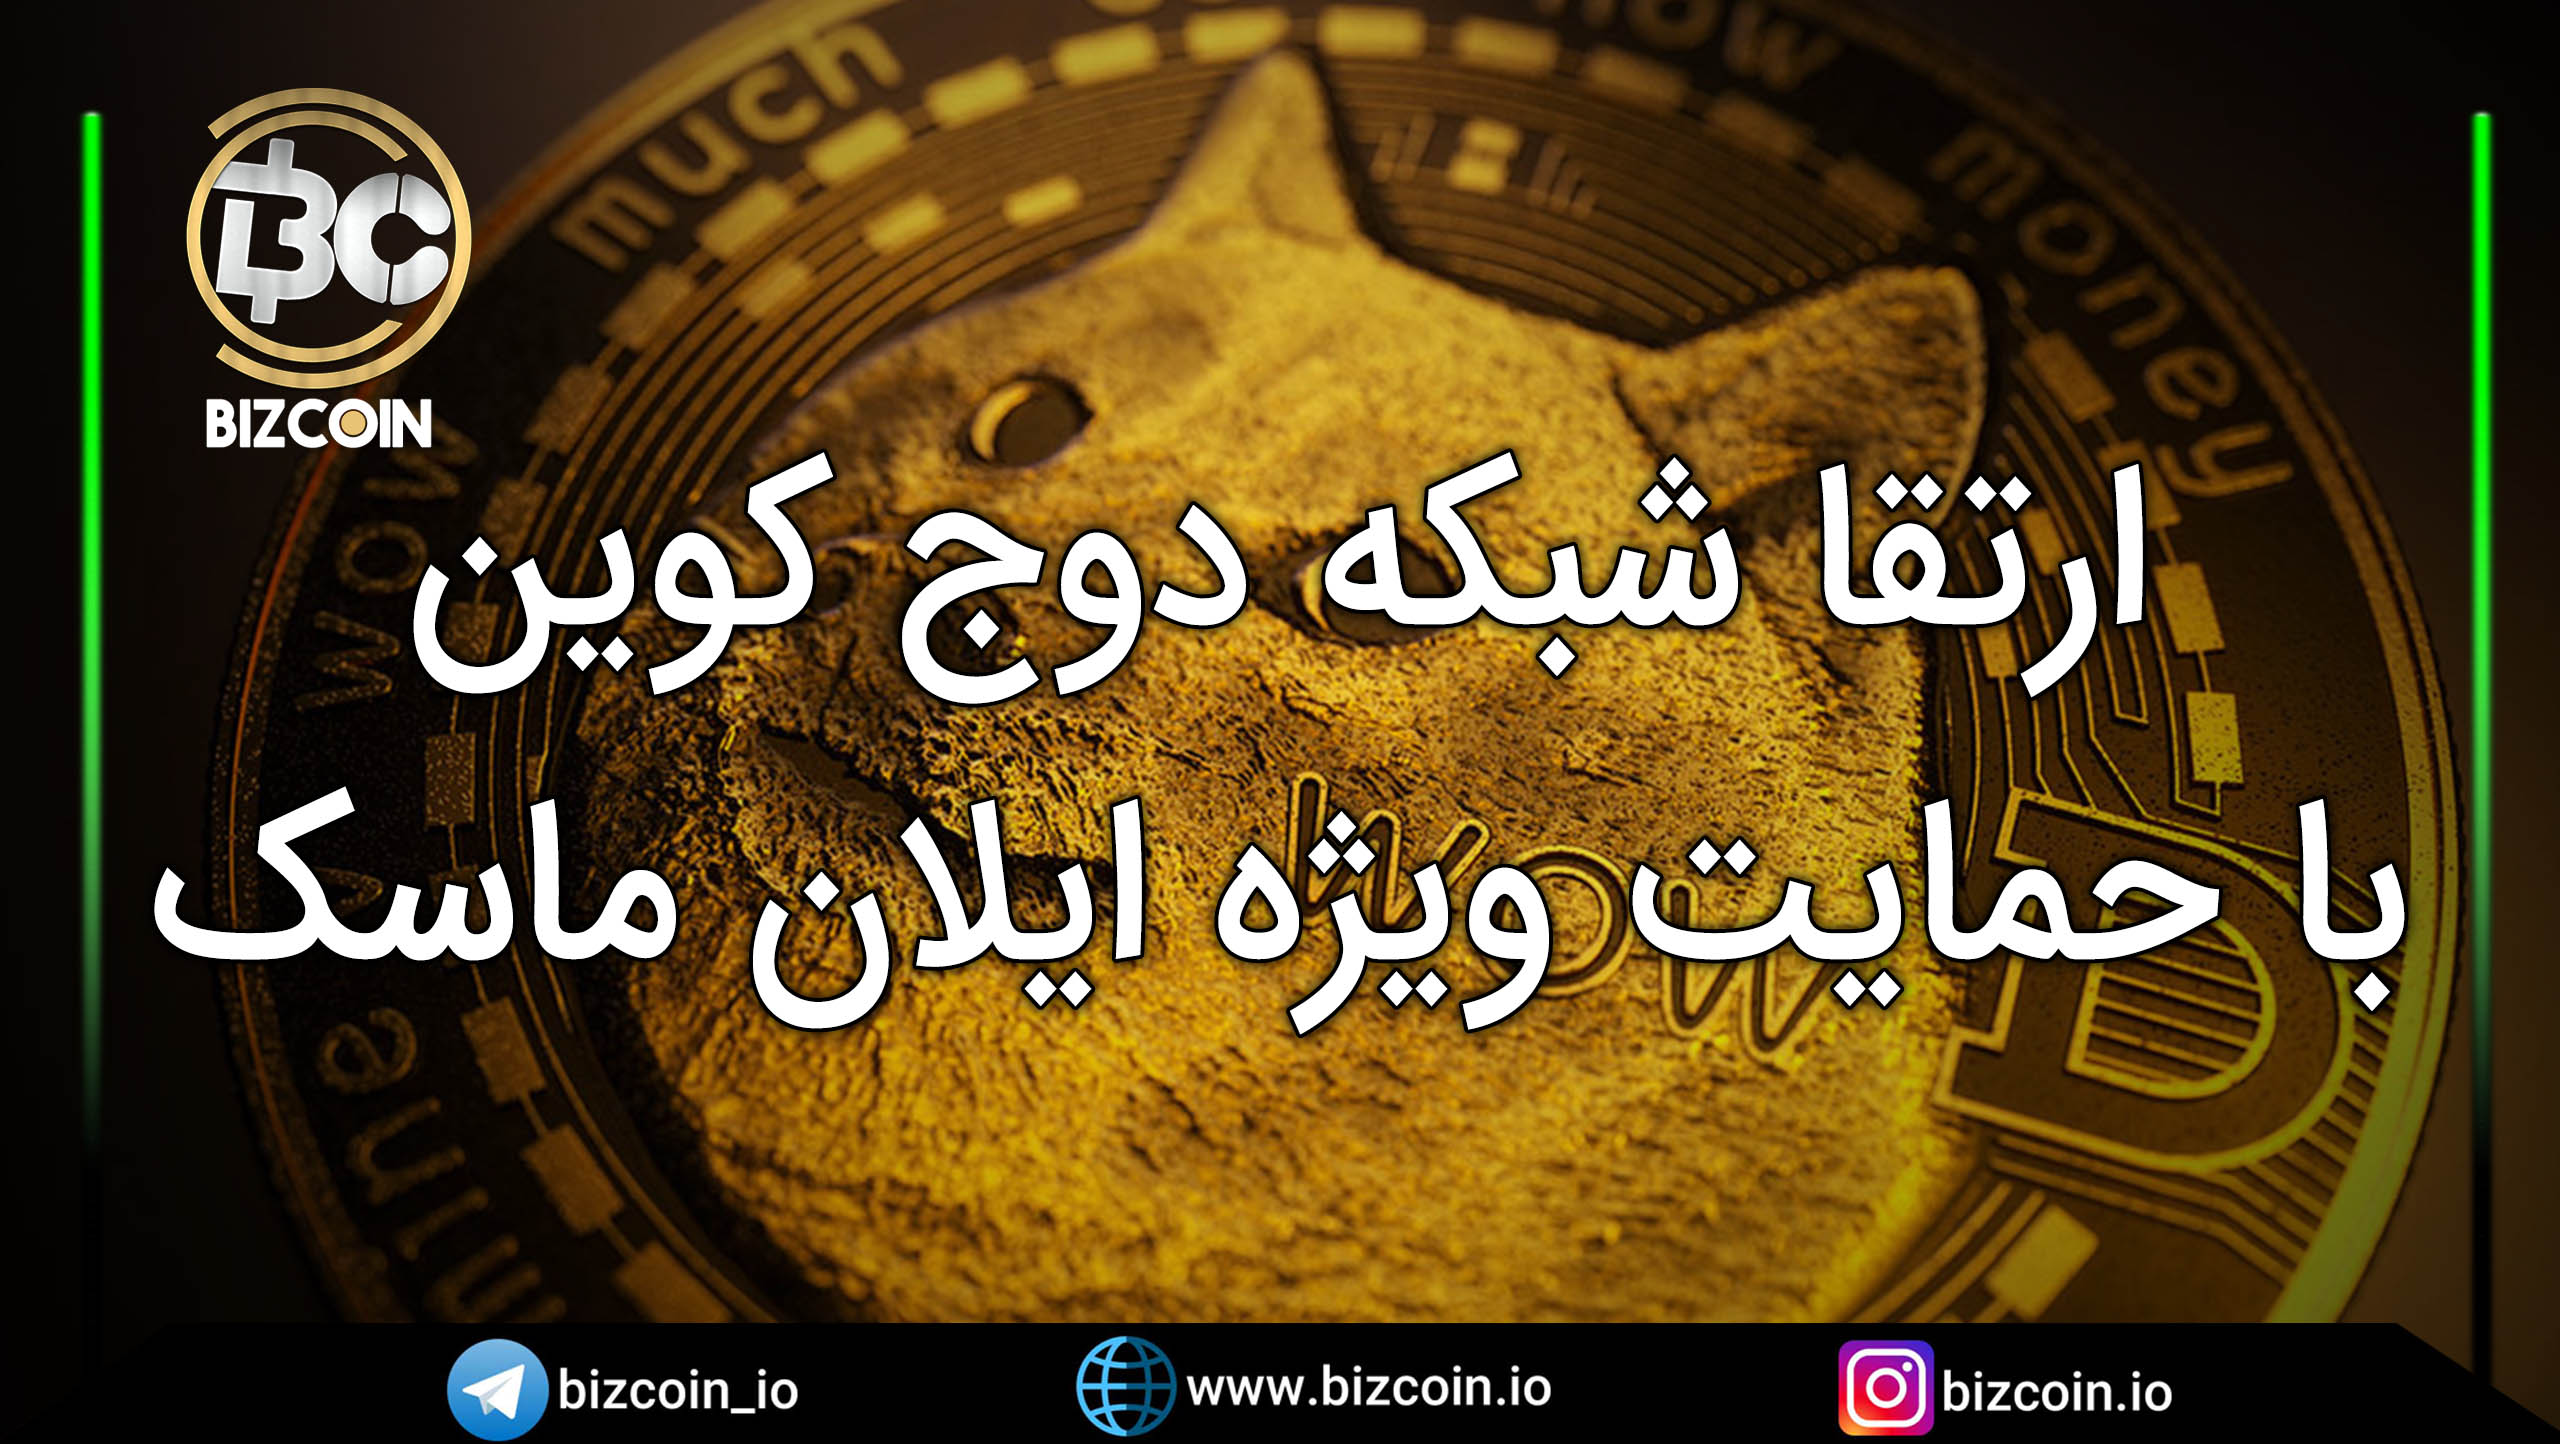 dogecoin network upgrade with special support from elon Musk ارتقا شبکه دوج کوین با حمایت ویژه ایلان ماسک